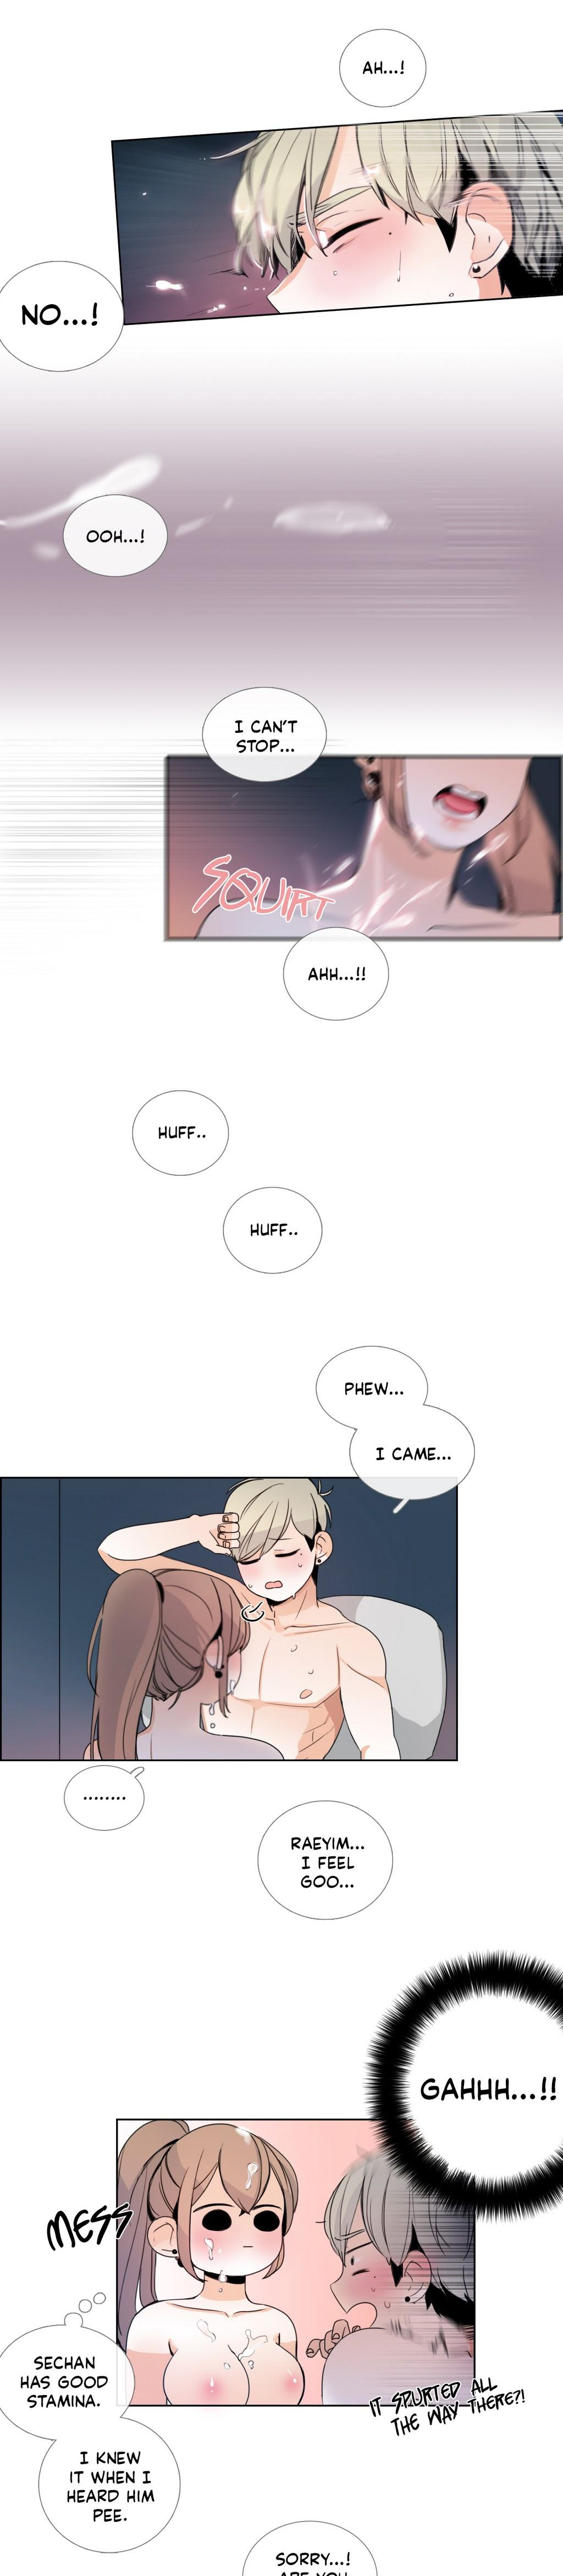 Talk To Me Ch.1-38 318